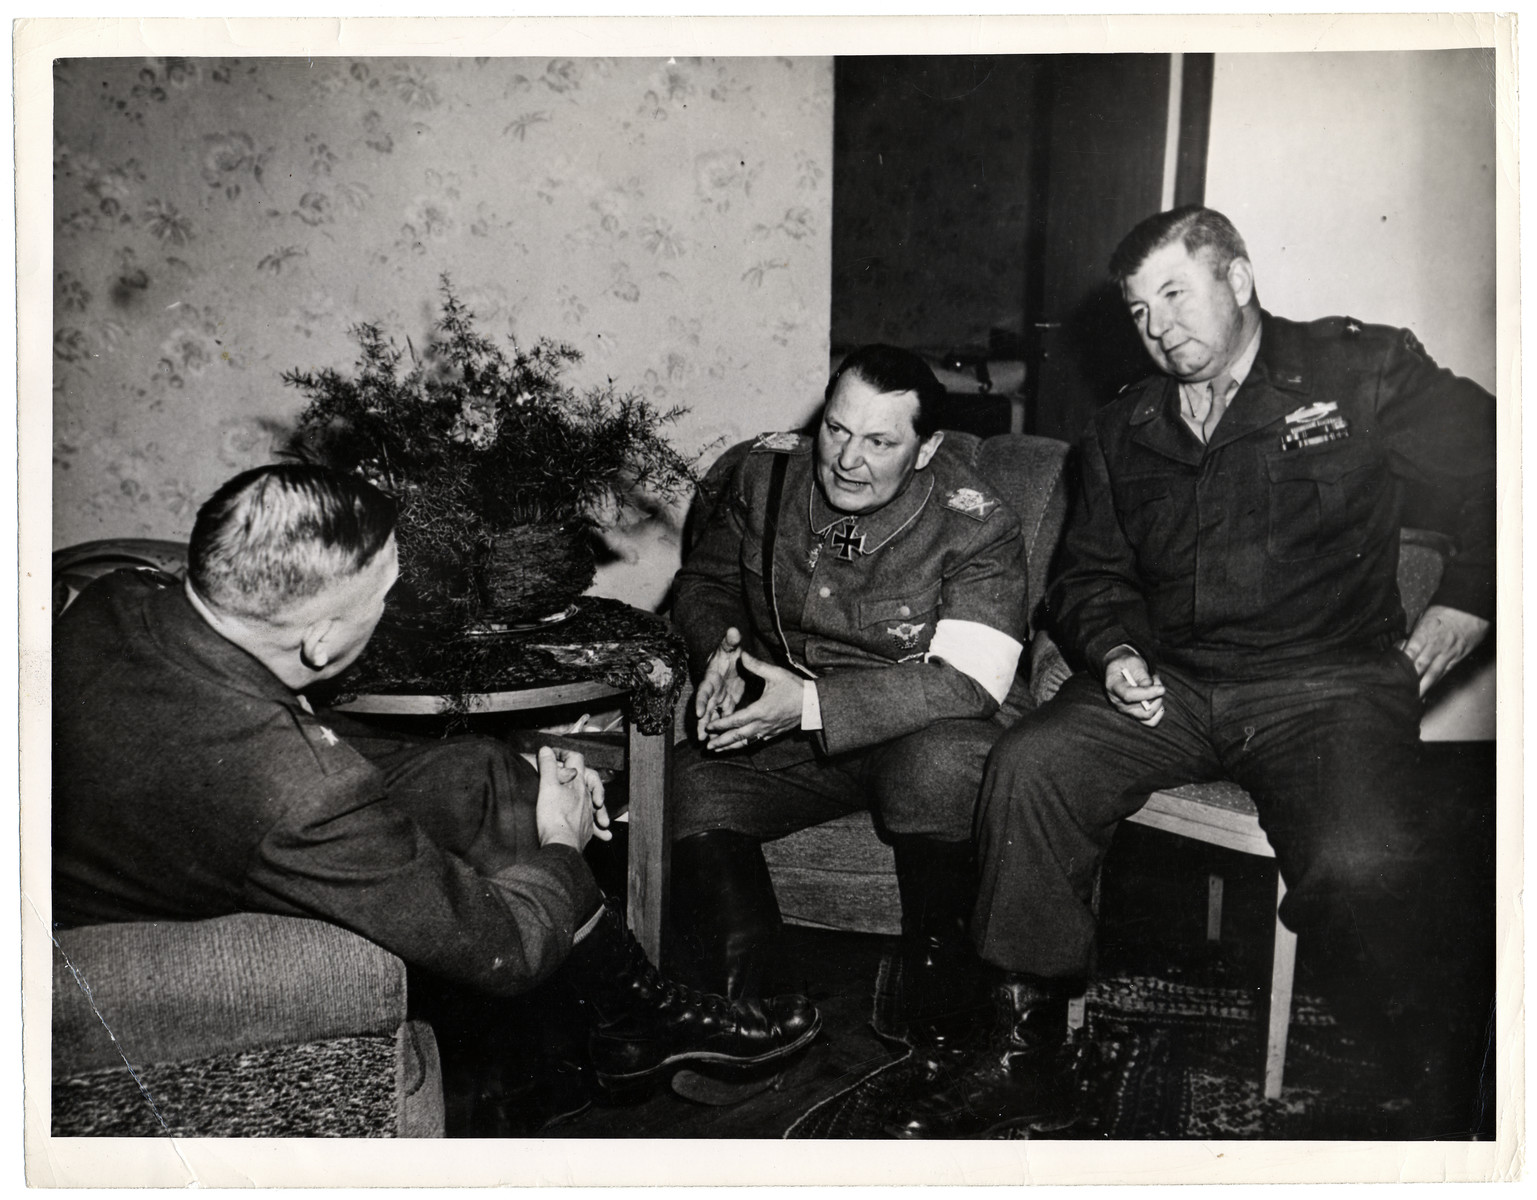 "Hermann Goering (center) talks with Brigadier General Robert J. Stack, Assistant Commander of the 36th Infantry Division (right) and Major General John Dahlquist, Commander of the 36th Division after his arrest in the Grand Hotel at Kitzbuehl.  Original Caption: ""Herman Goering, second to Adolf Hitler in the Nazi Party hierarchy, was captured by troops of the 36th Divion, Seventh U.S. Army, at Kitzbuehl, Austria, it was announced May 9, 1945, by Supreme Headquarters Allied Expoditionary Force. He surrendered to Brigadier Gerneral Robert J Stack, Assistant Commander of the 36th Divion. Goering said that the last time he spoke to Hitler was April 24, 1945, when he said he telephoned the Fuhrer and suggested that he assume command as Germany was being cut in two. Goering claimed that Hitler had become outraged, accused him of losing faith and said that the death sentence would be passed."""